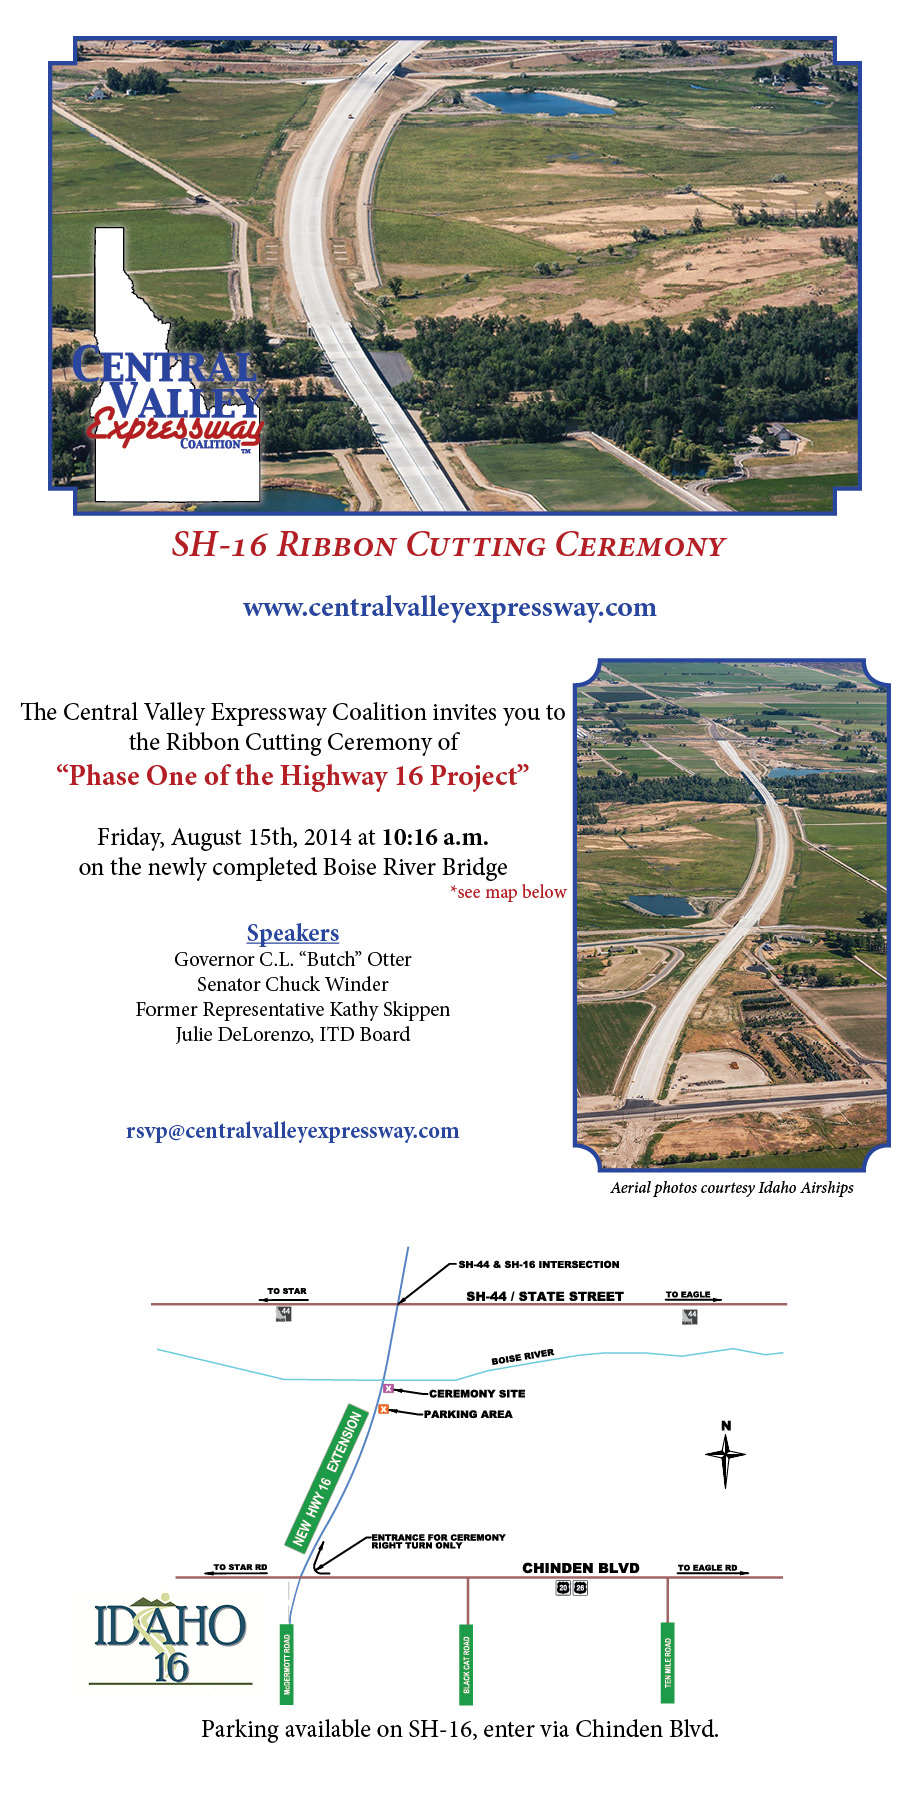 Central Valley Expressway Coalition | The Central Valley